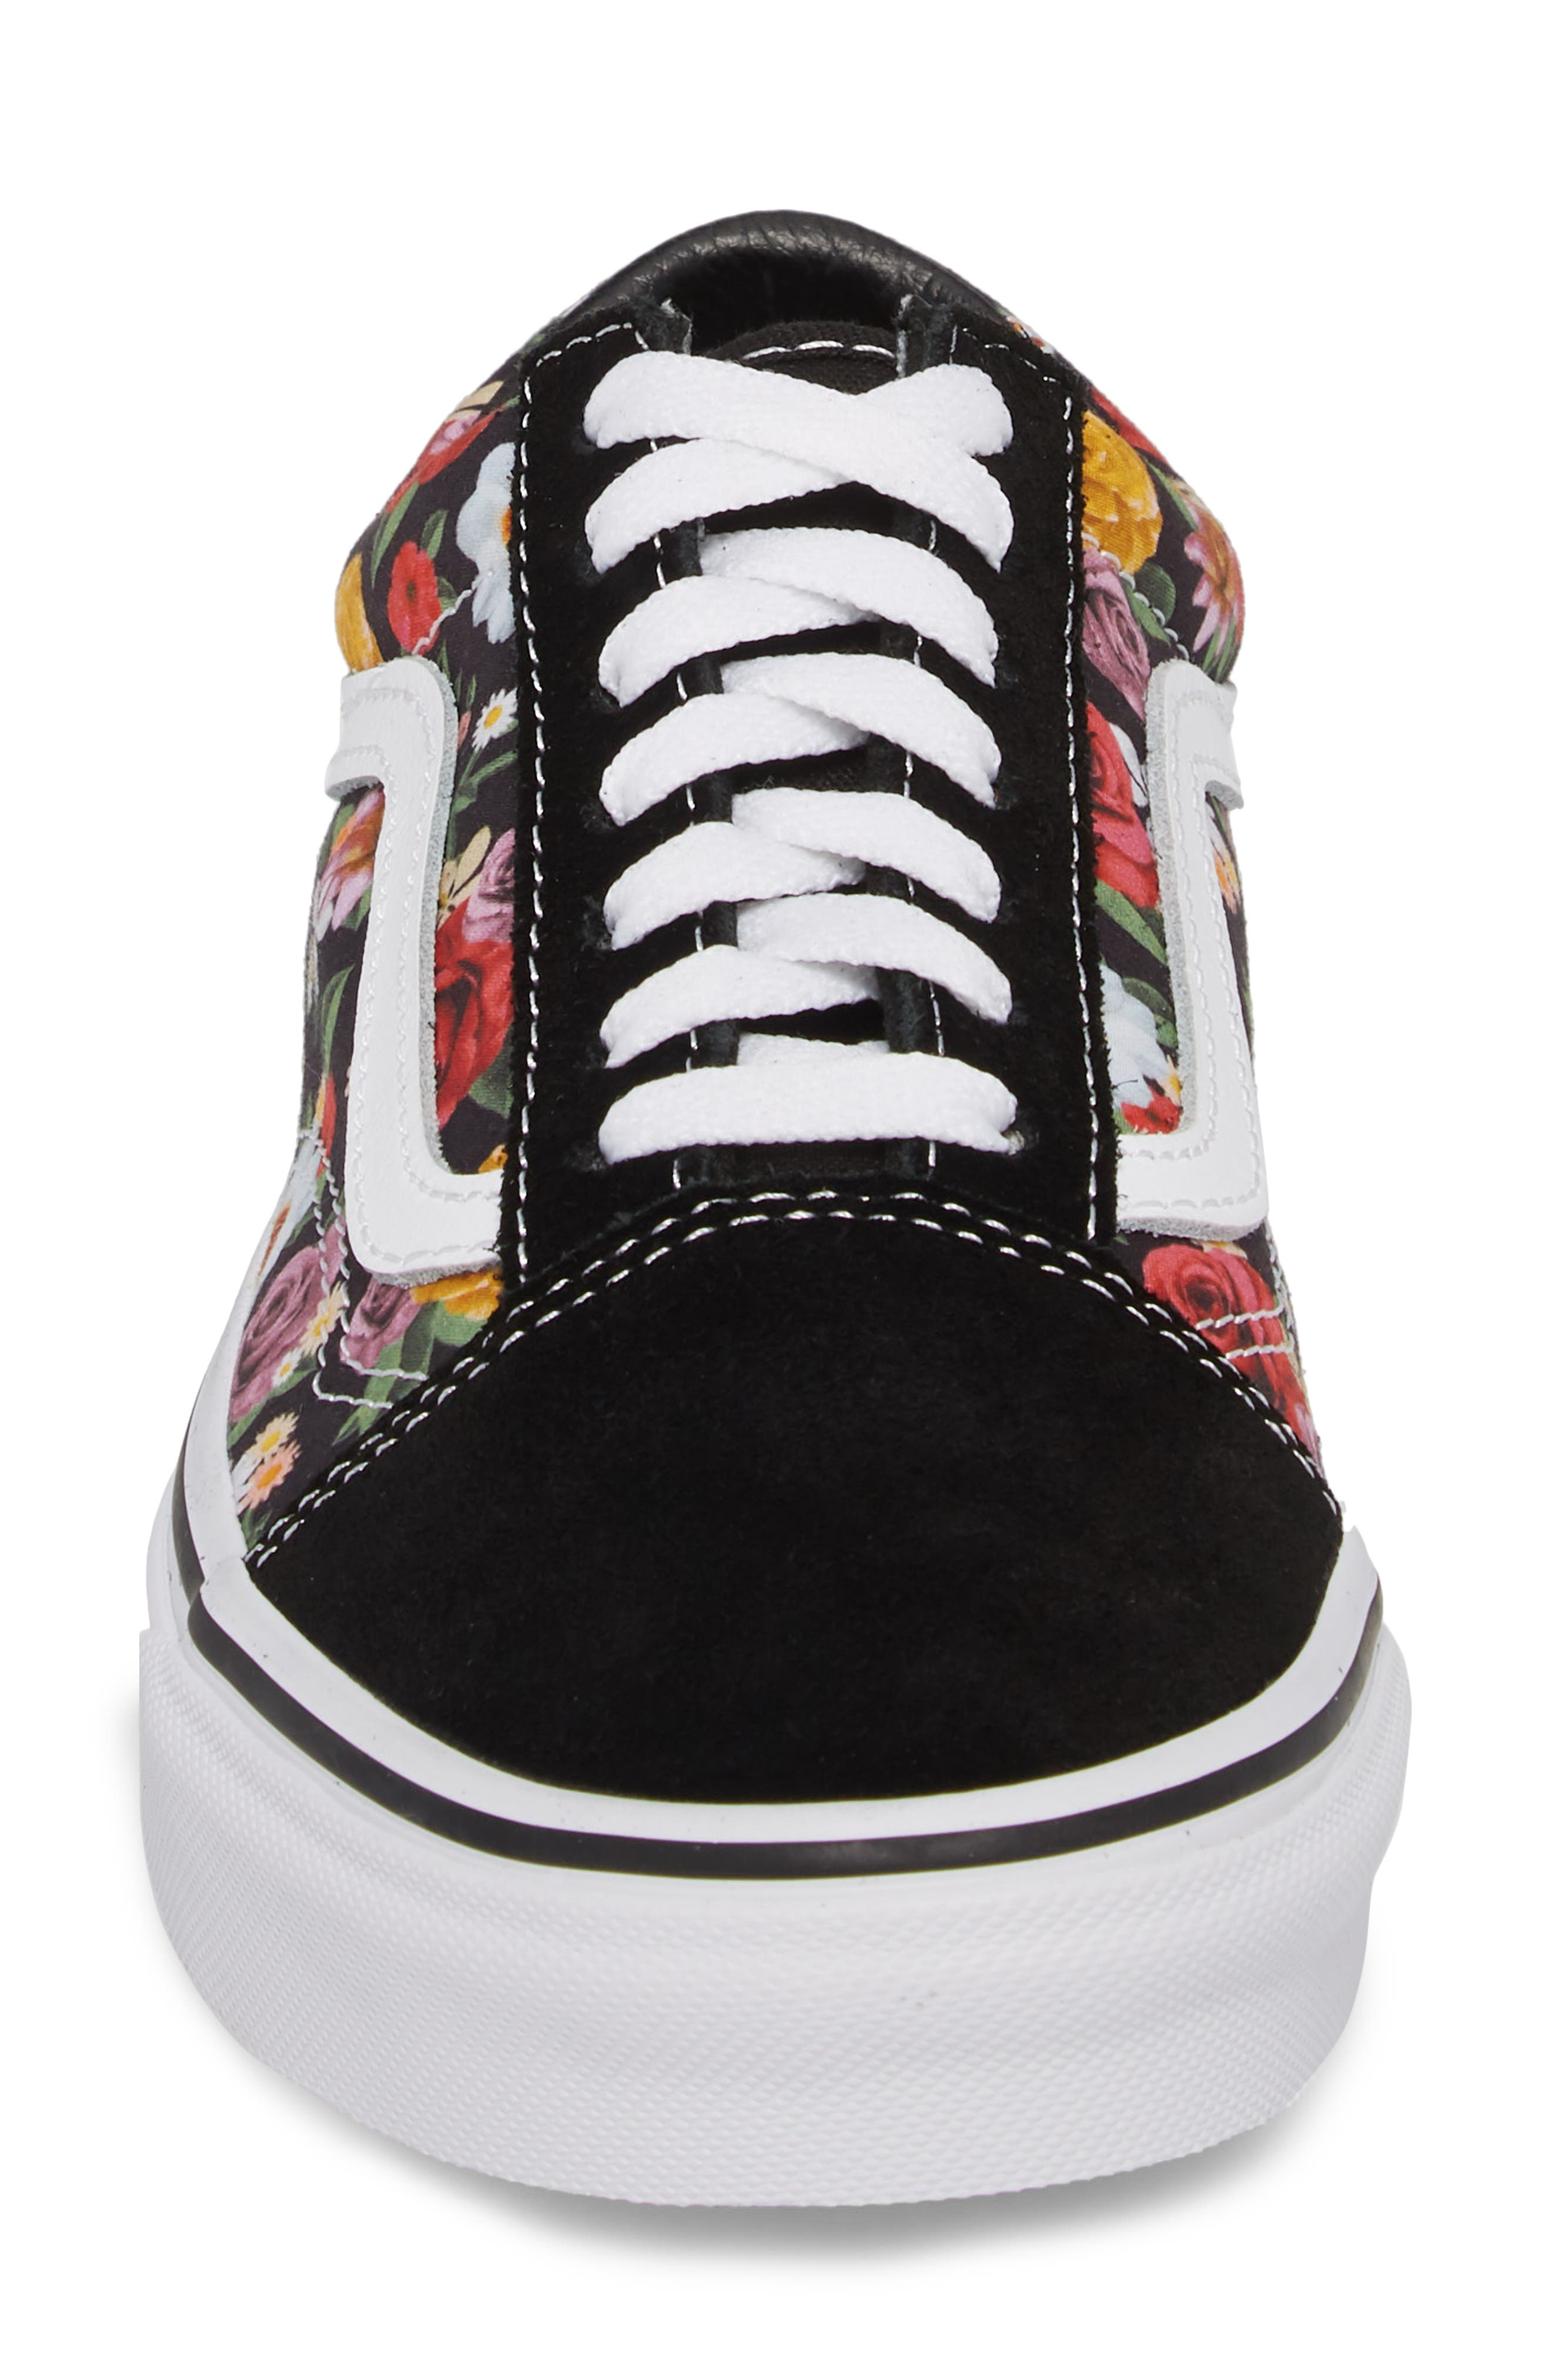 UA Old Skool Lux Floral Sneaker,                             Alternate thumbnail 4, color,                             001